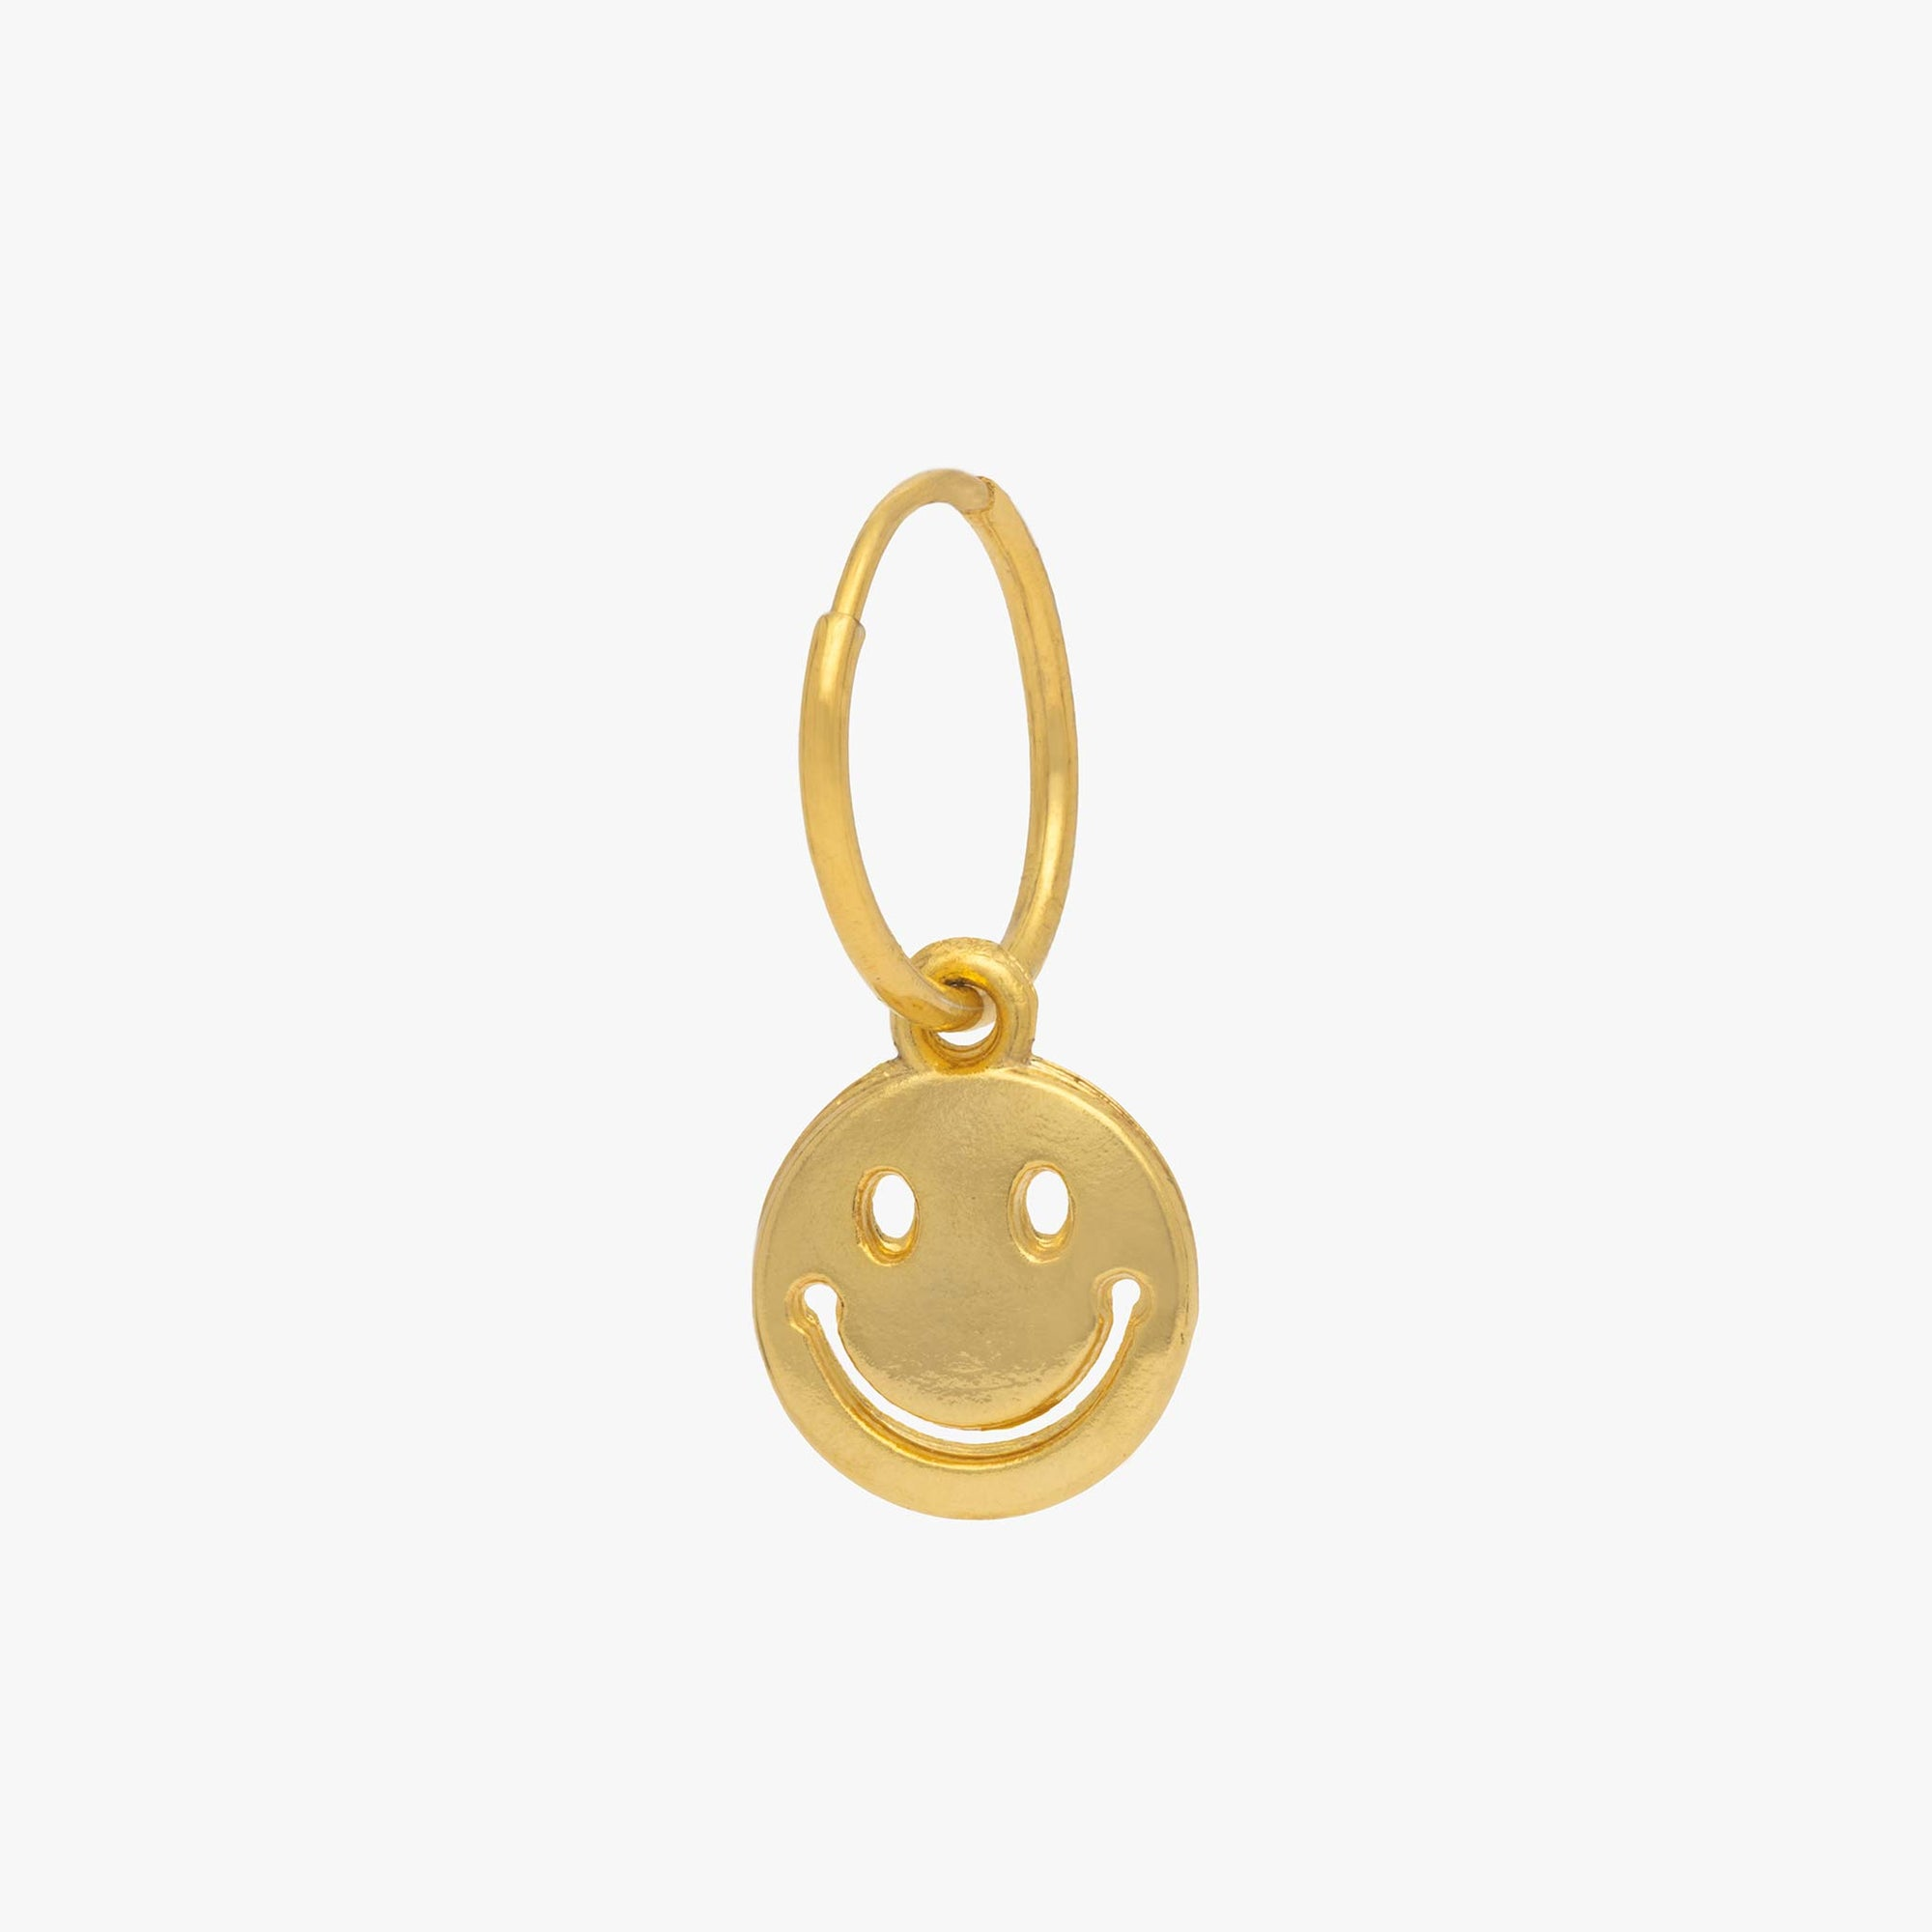 Smiley face charm in gold. color:gold